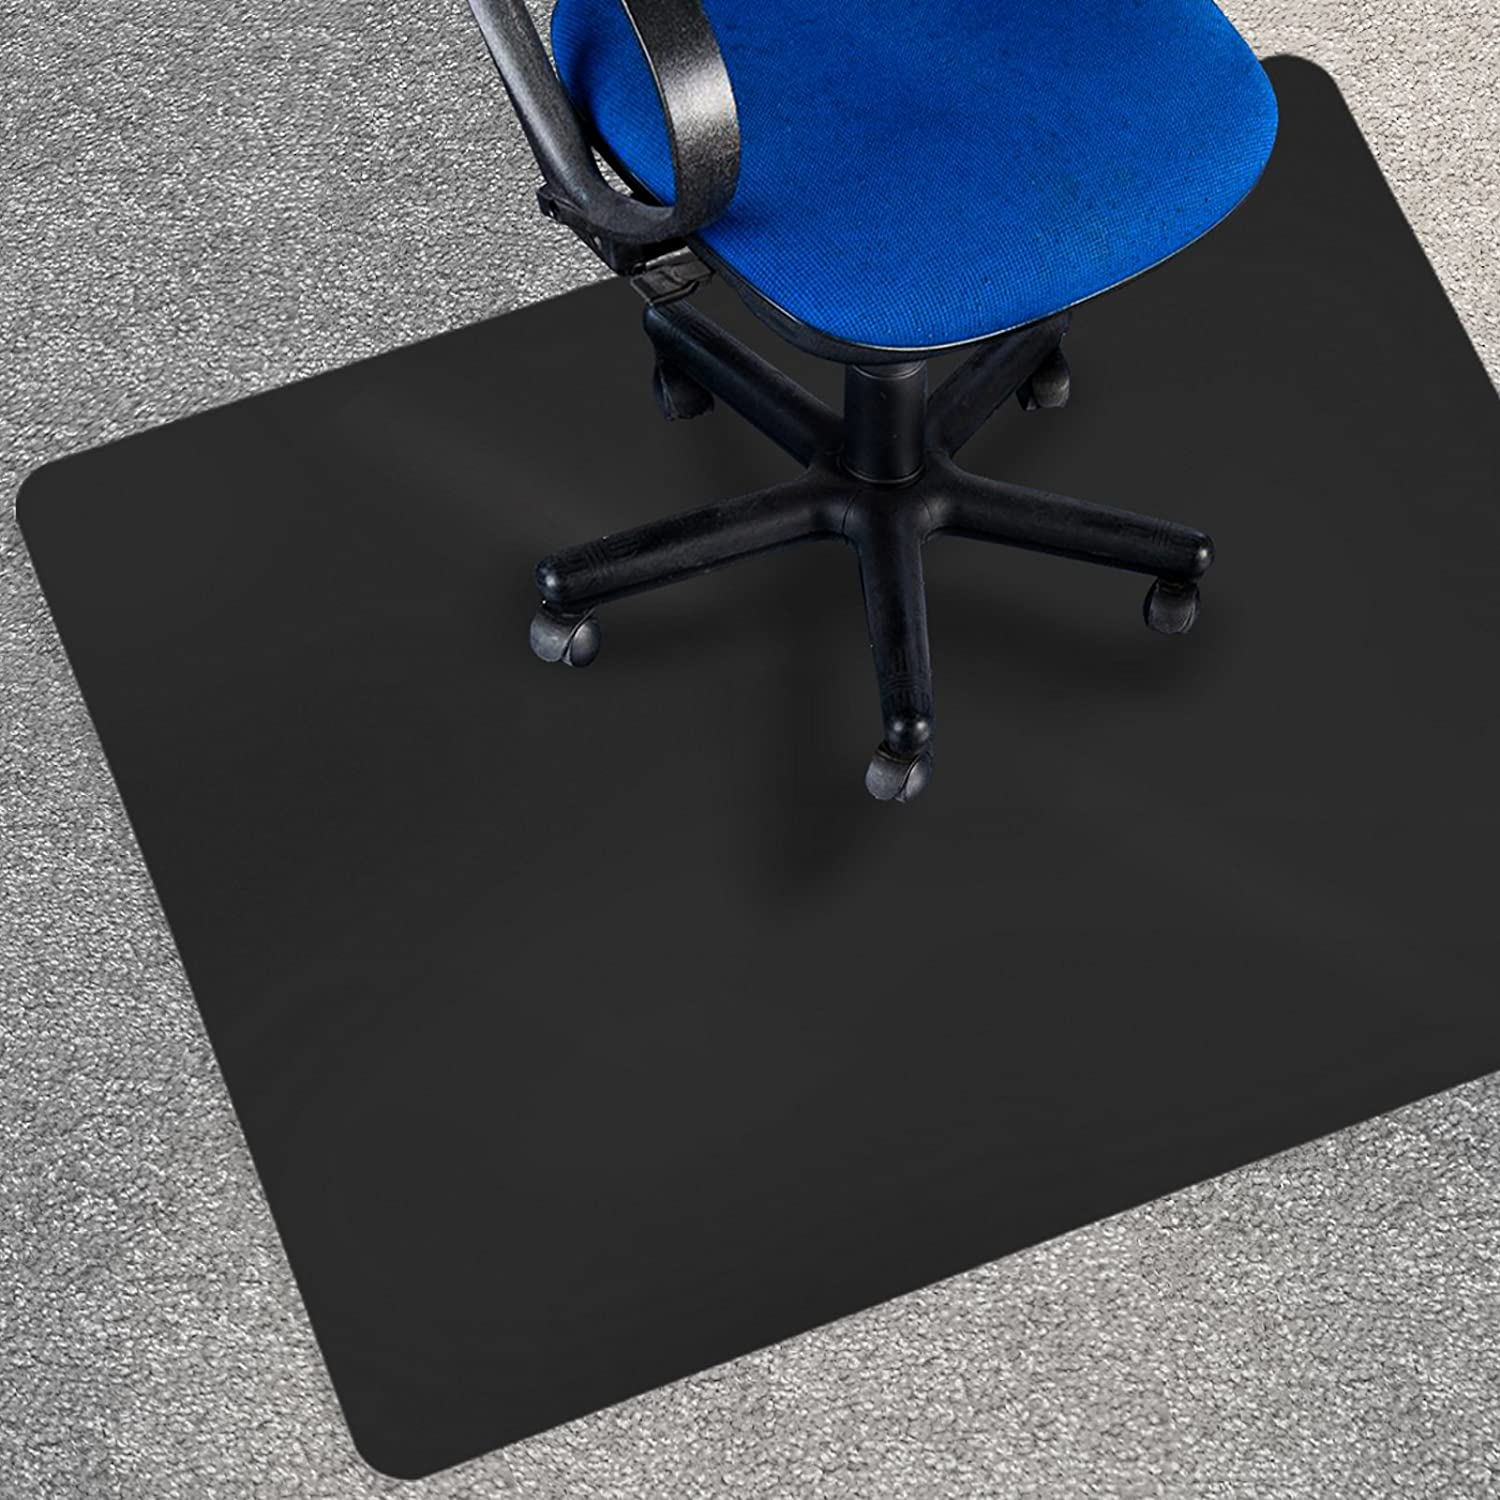 Nice Etm Black Polycarbonate Office Chair Mat   90x120cm (3u0027x4u0027)   Carpet Floor  Protection   No Recycling Material   High Impact Strength: Amazon.co.uk:  Kitchen ...